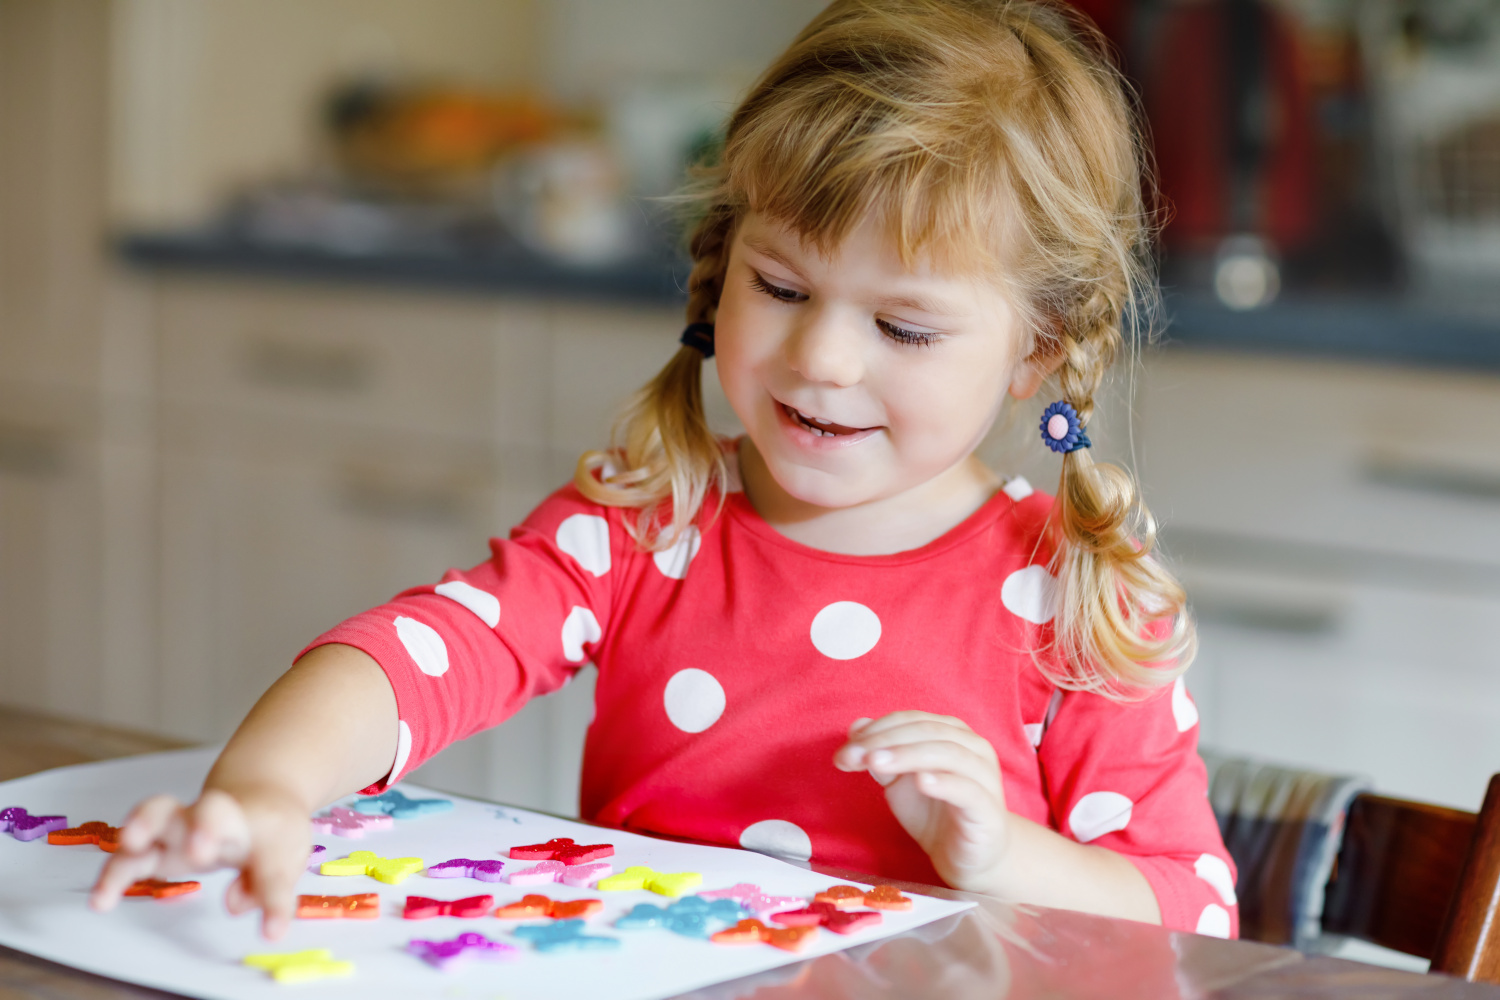 Child Playing With Stickers